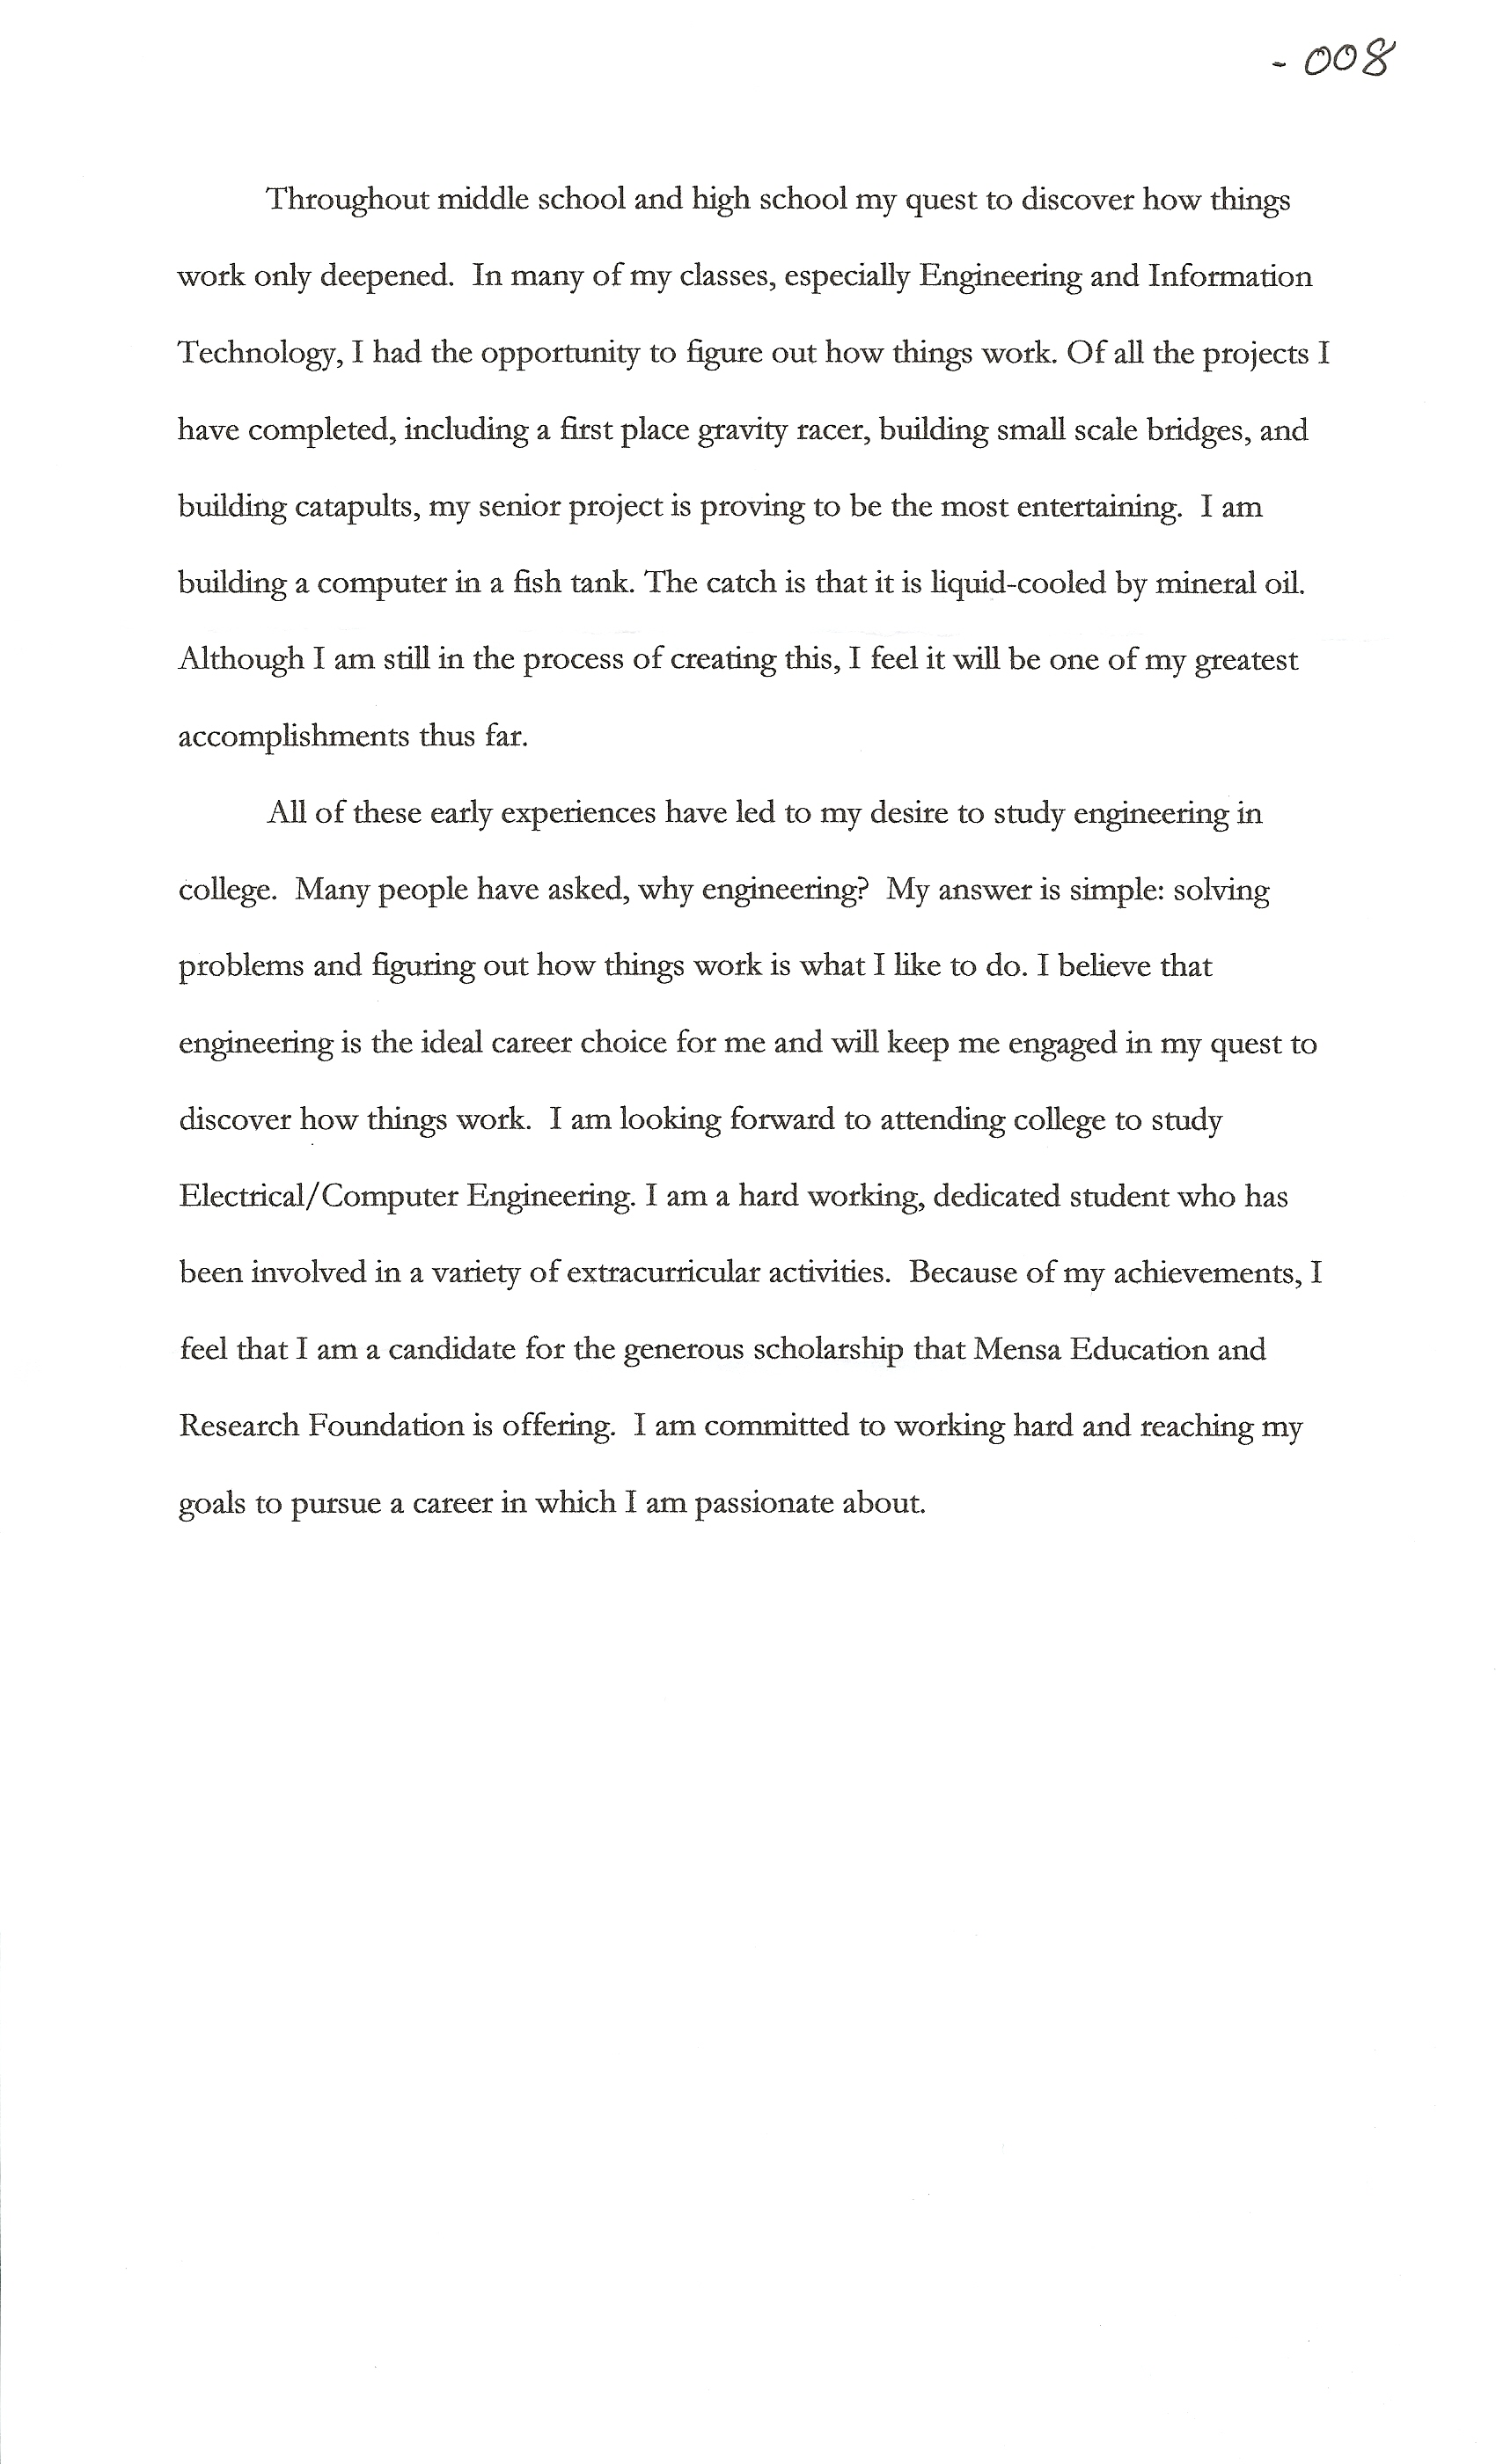 003 Joshua Cate Essay Example About Awesome Goals In High School After Career Life Full